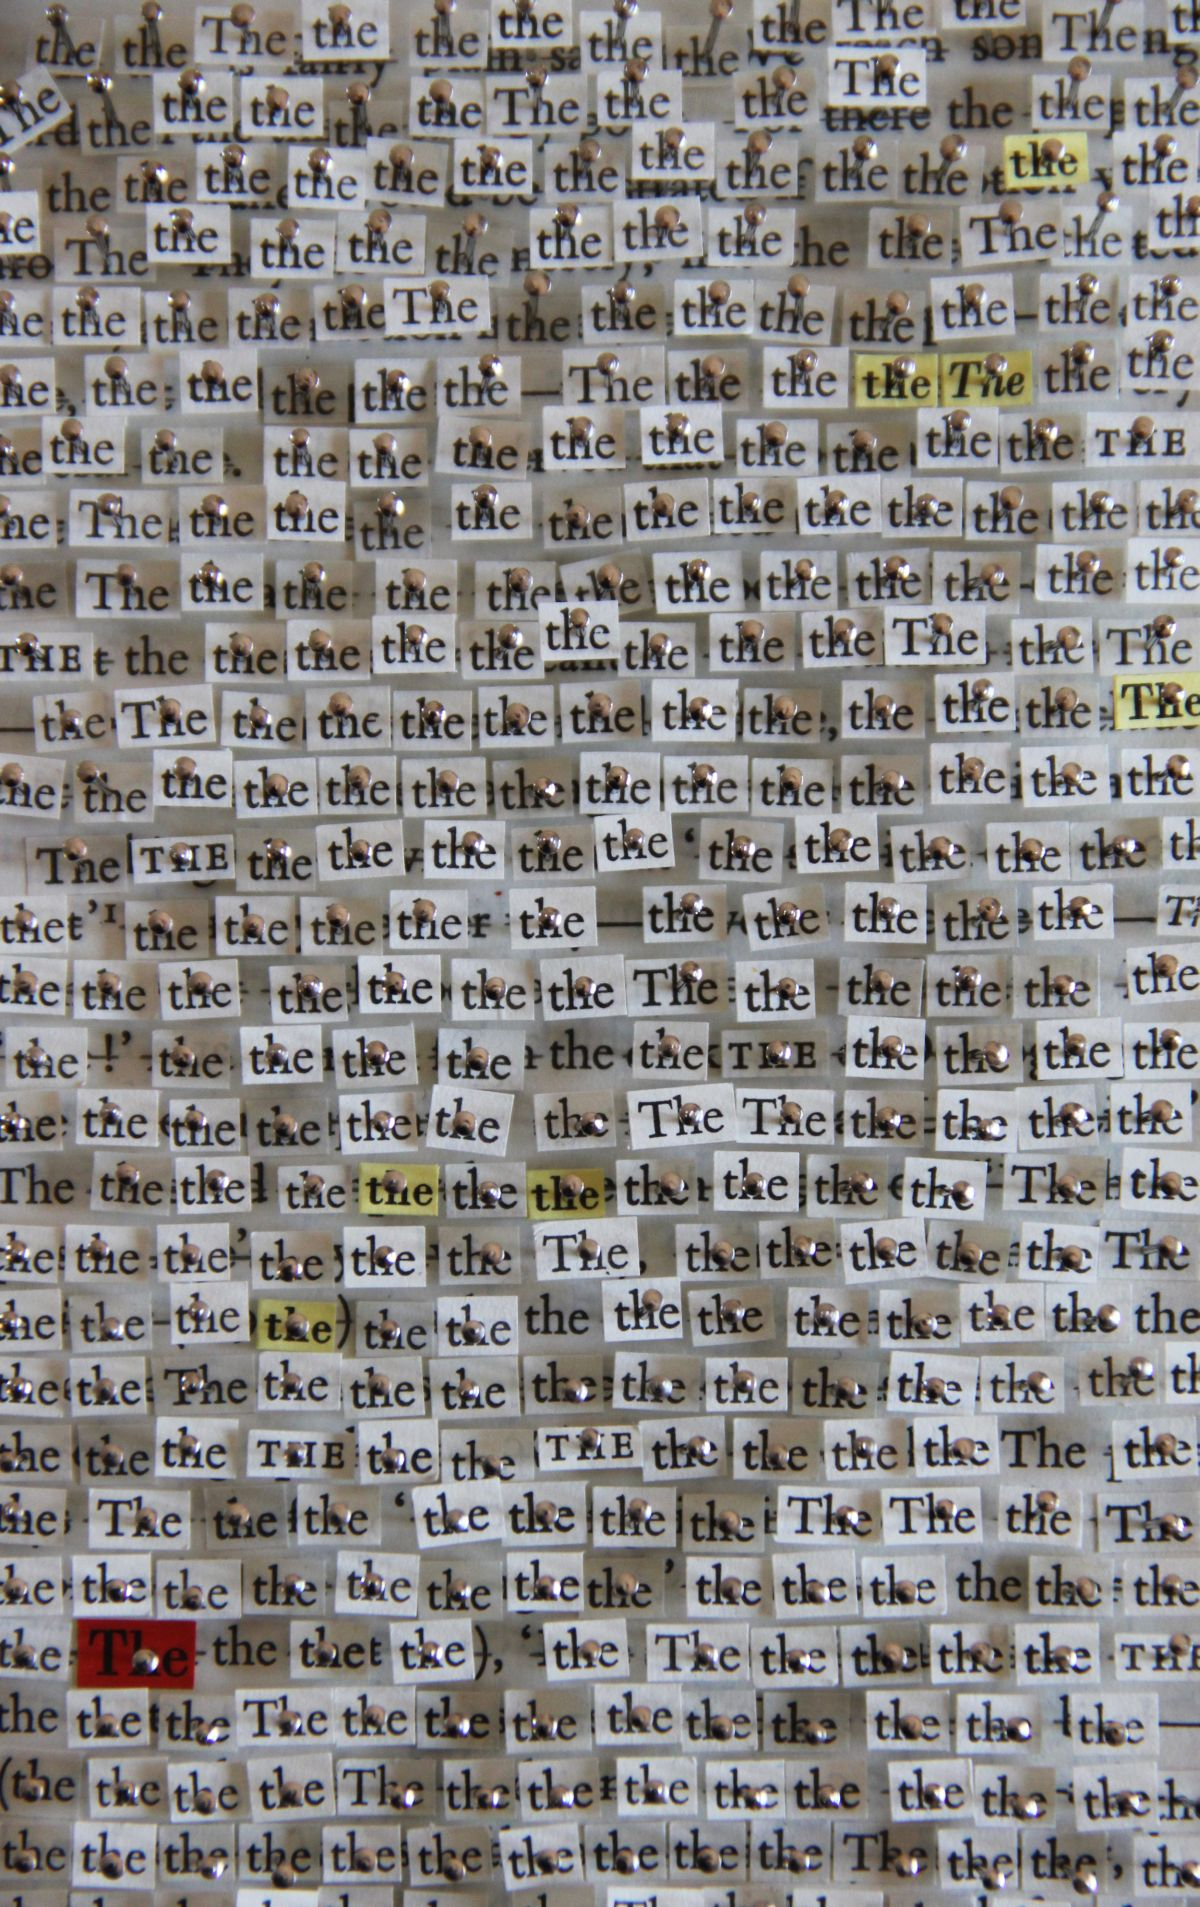 Click the image for a view of: Chloё Reid. 'the, of, and, to, a' (detail). 2013. Found text, pins. Dimensions variable